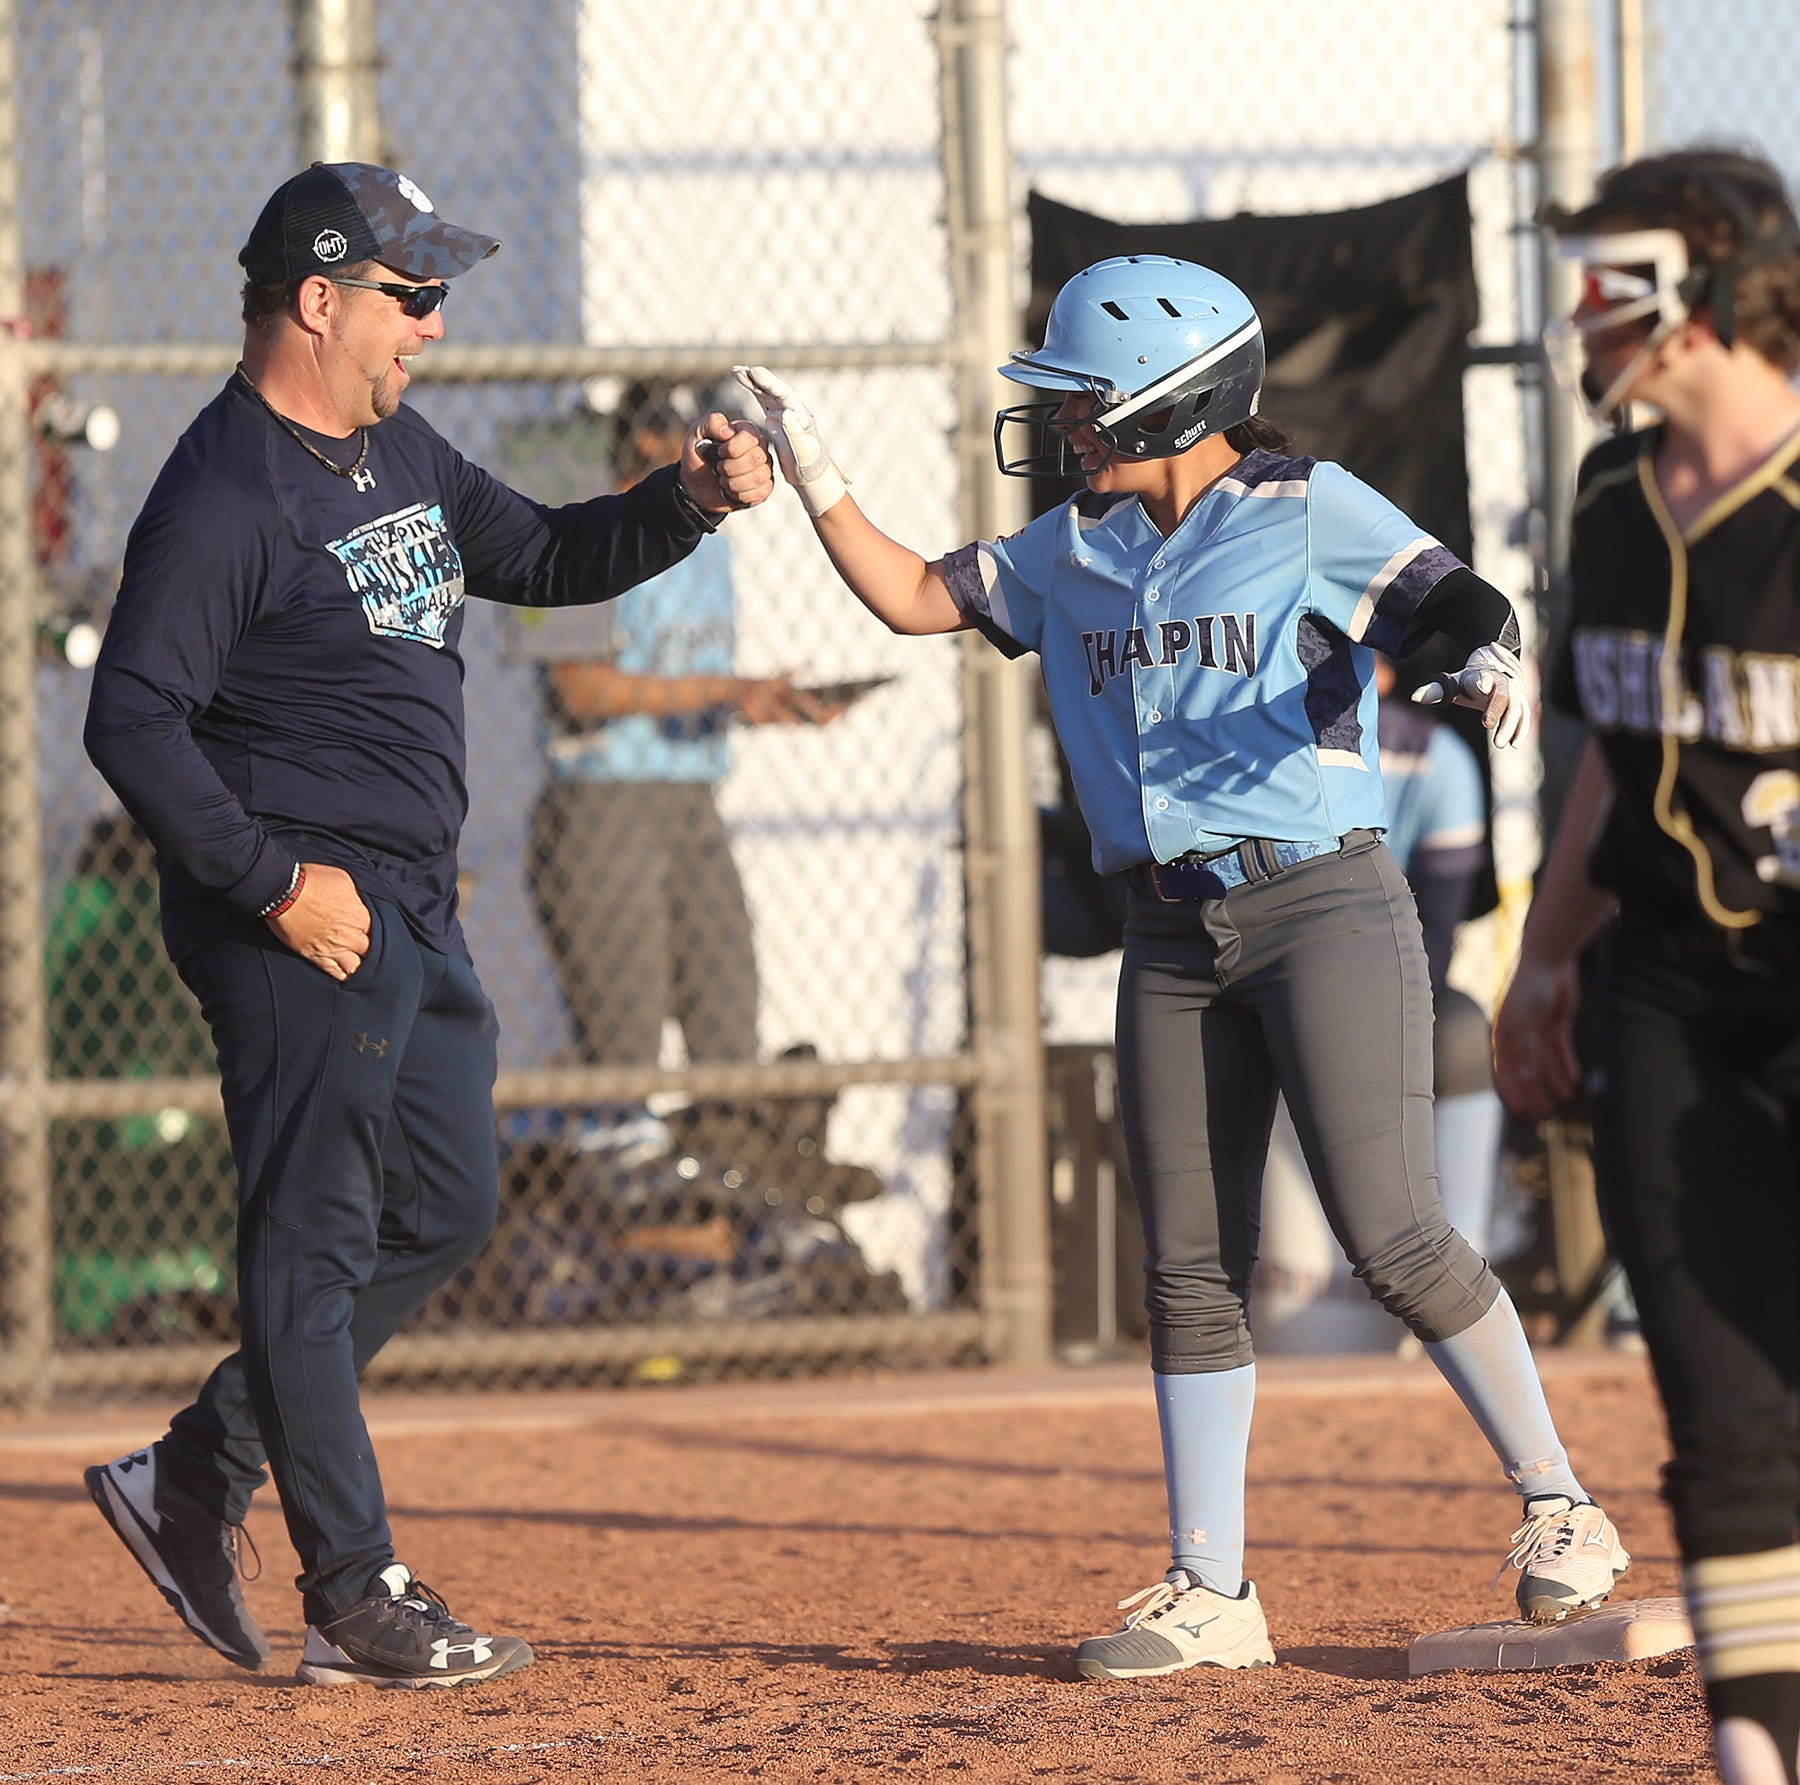 Chapin defeated Bushland High School 9-2 in March to win the Fox Country Fast Pitch Softball Tournament at Northeast Regional Park.